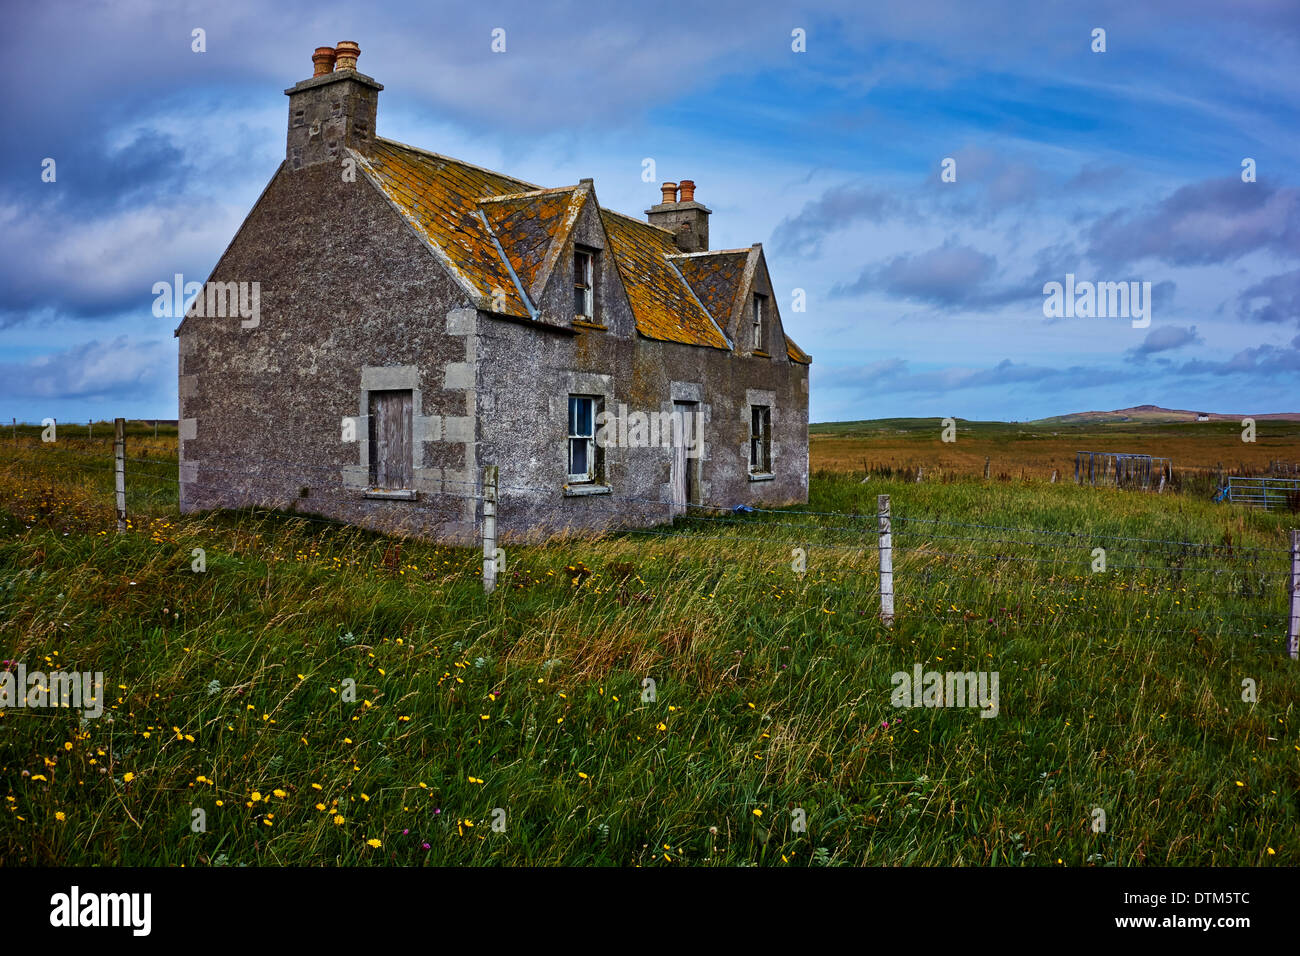 An old, abandoned farmhouse on South Uist in the Outer Hebrides, Scotland, UK. Stock Photo